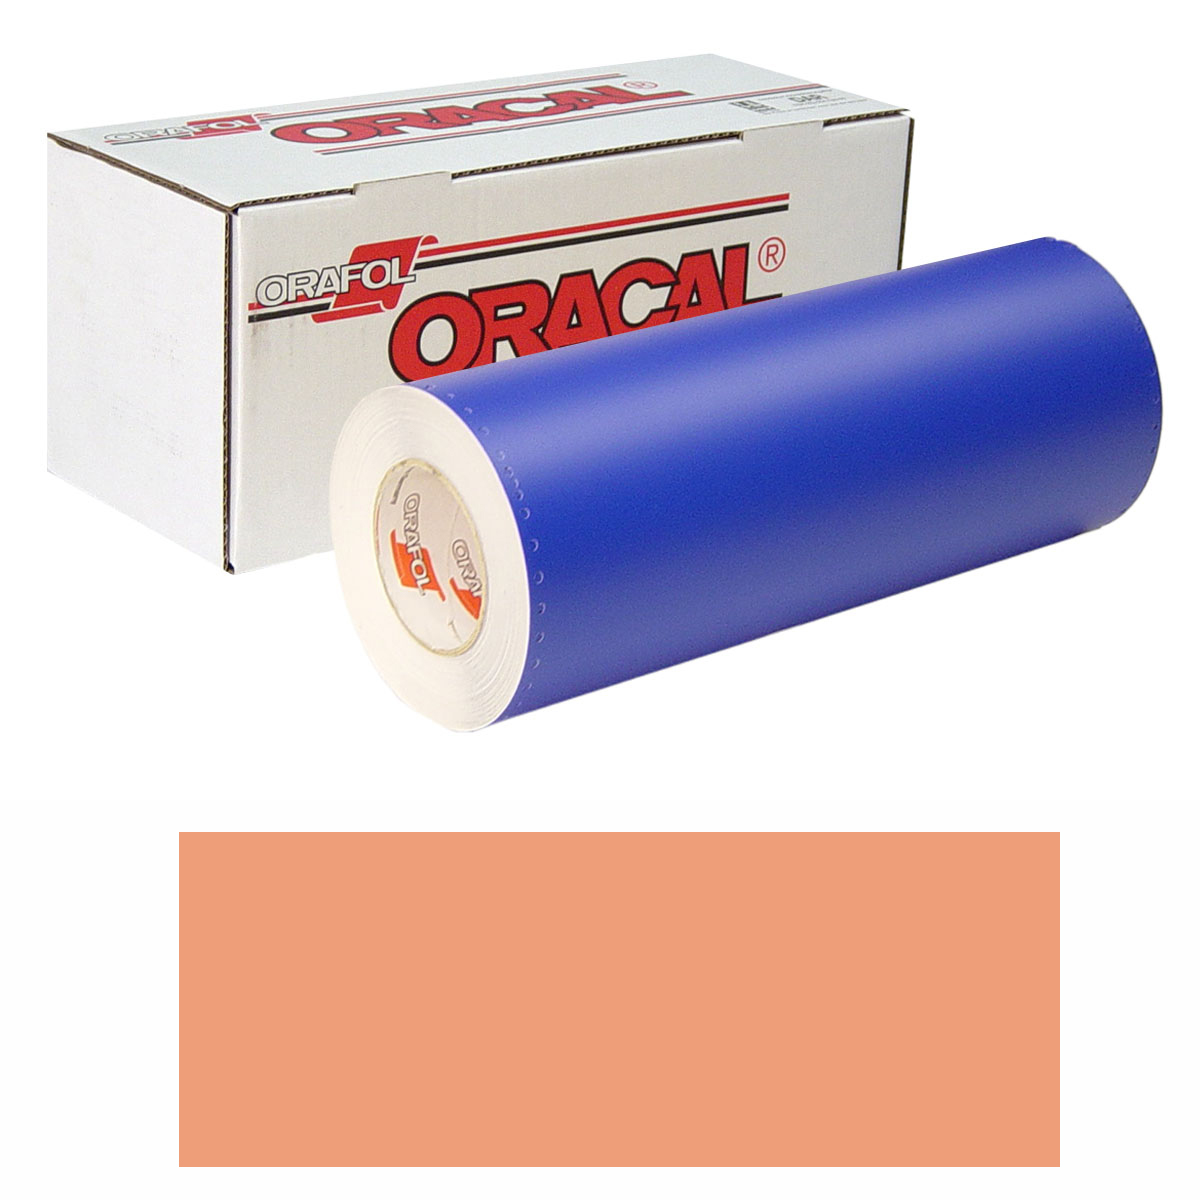 ORACAL 8300 Unp 24In X 50Yd 033 Red-Orange